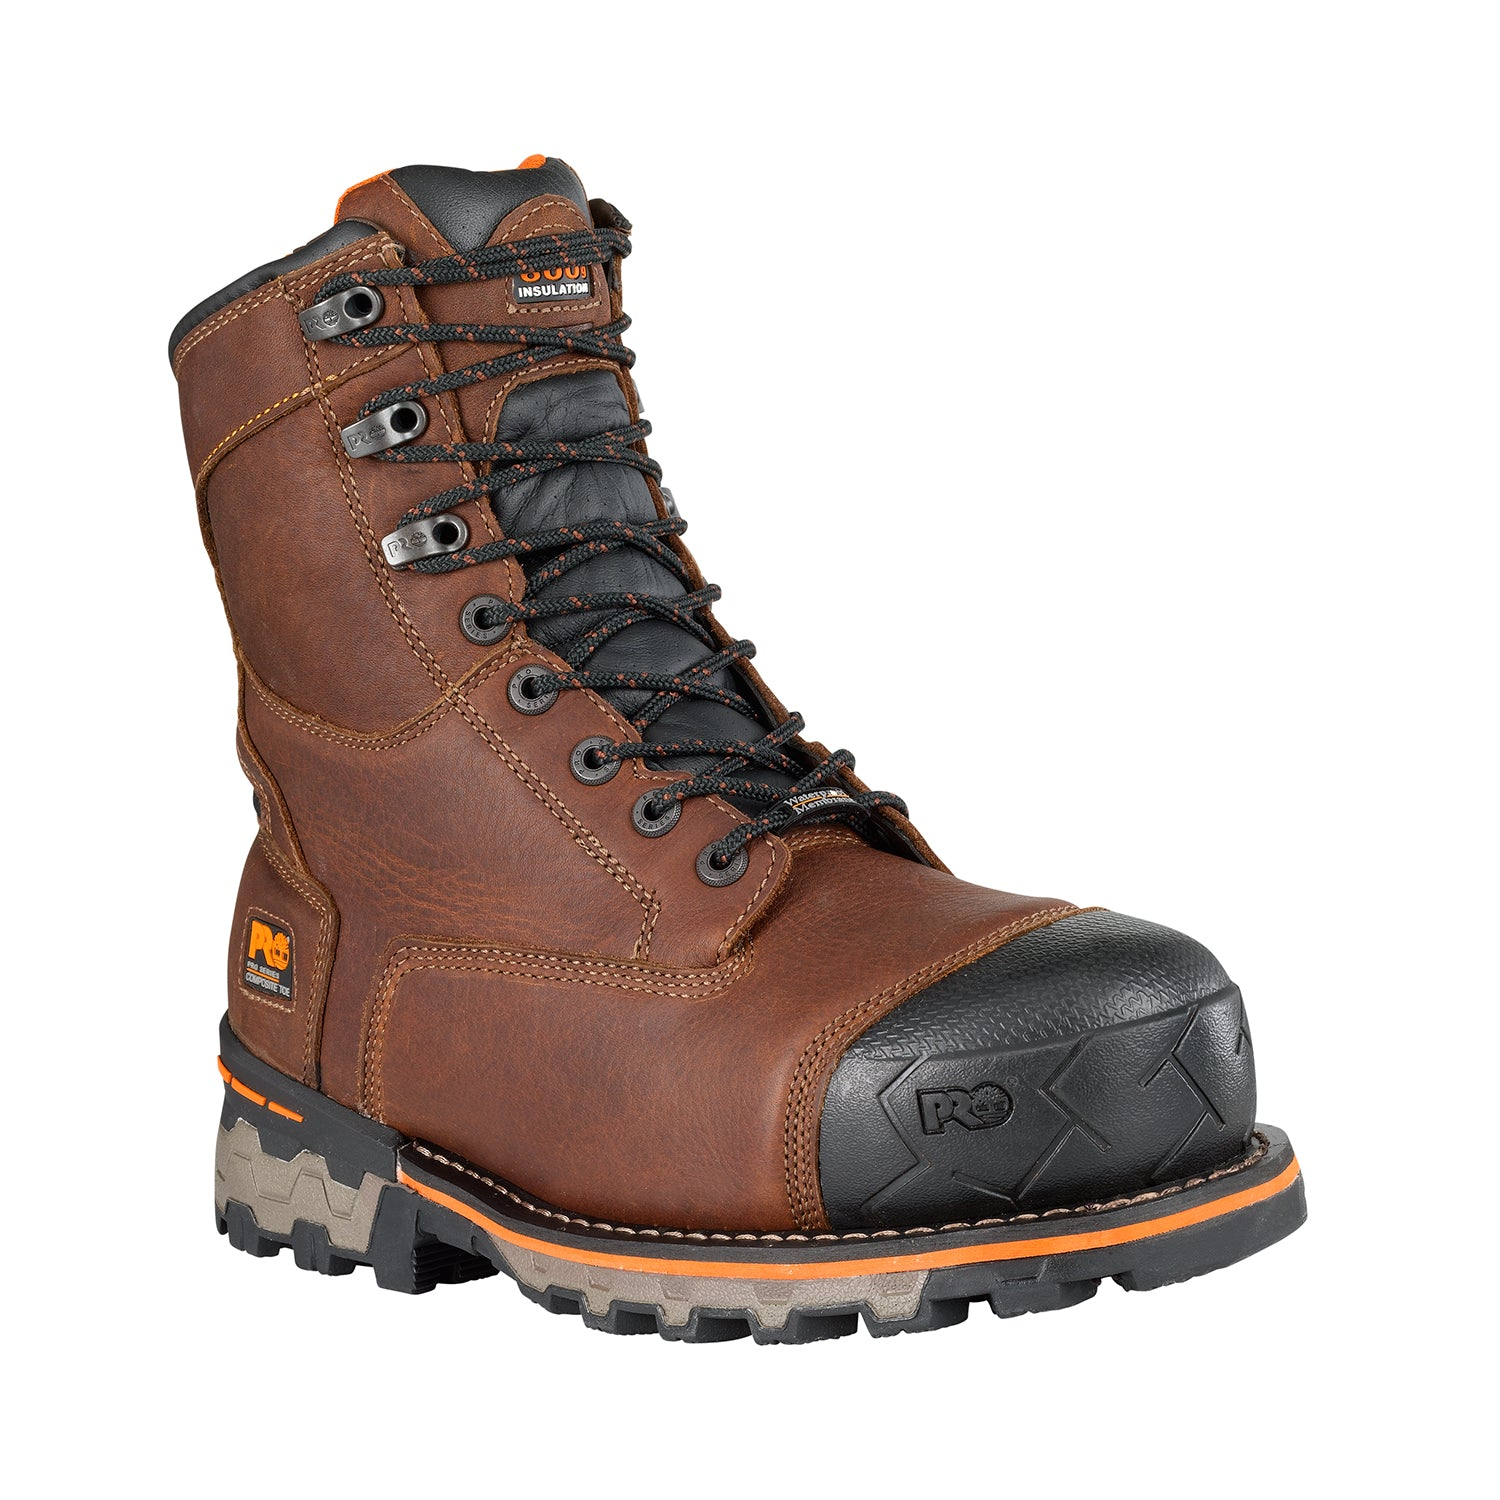 Timberland Pro BOONDOCK 600GR COMP - 89628